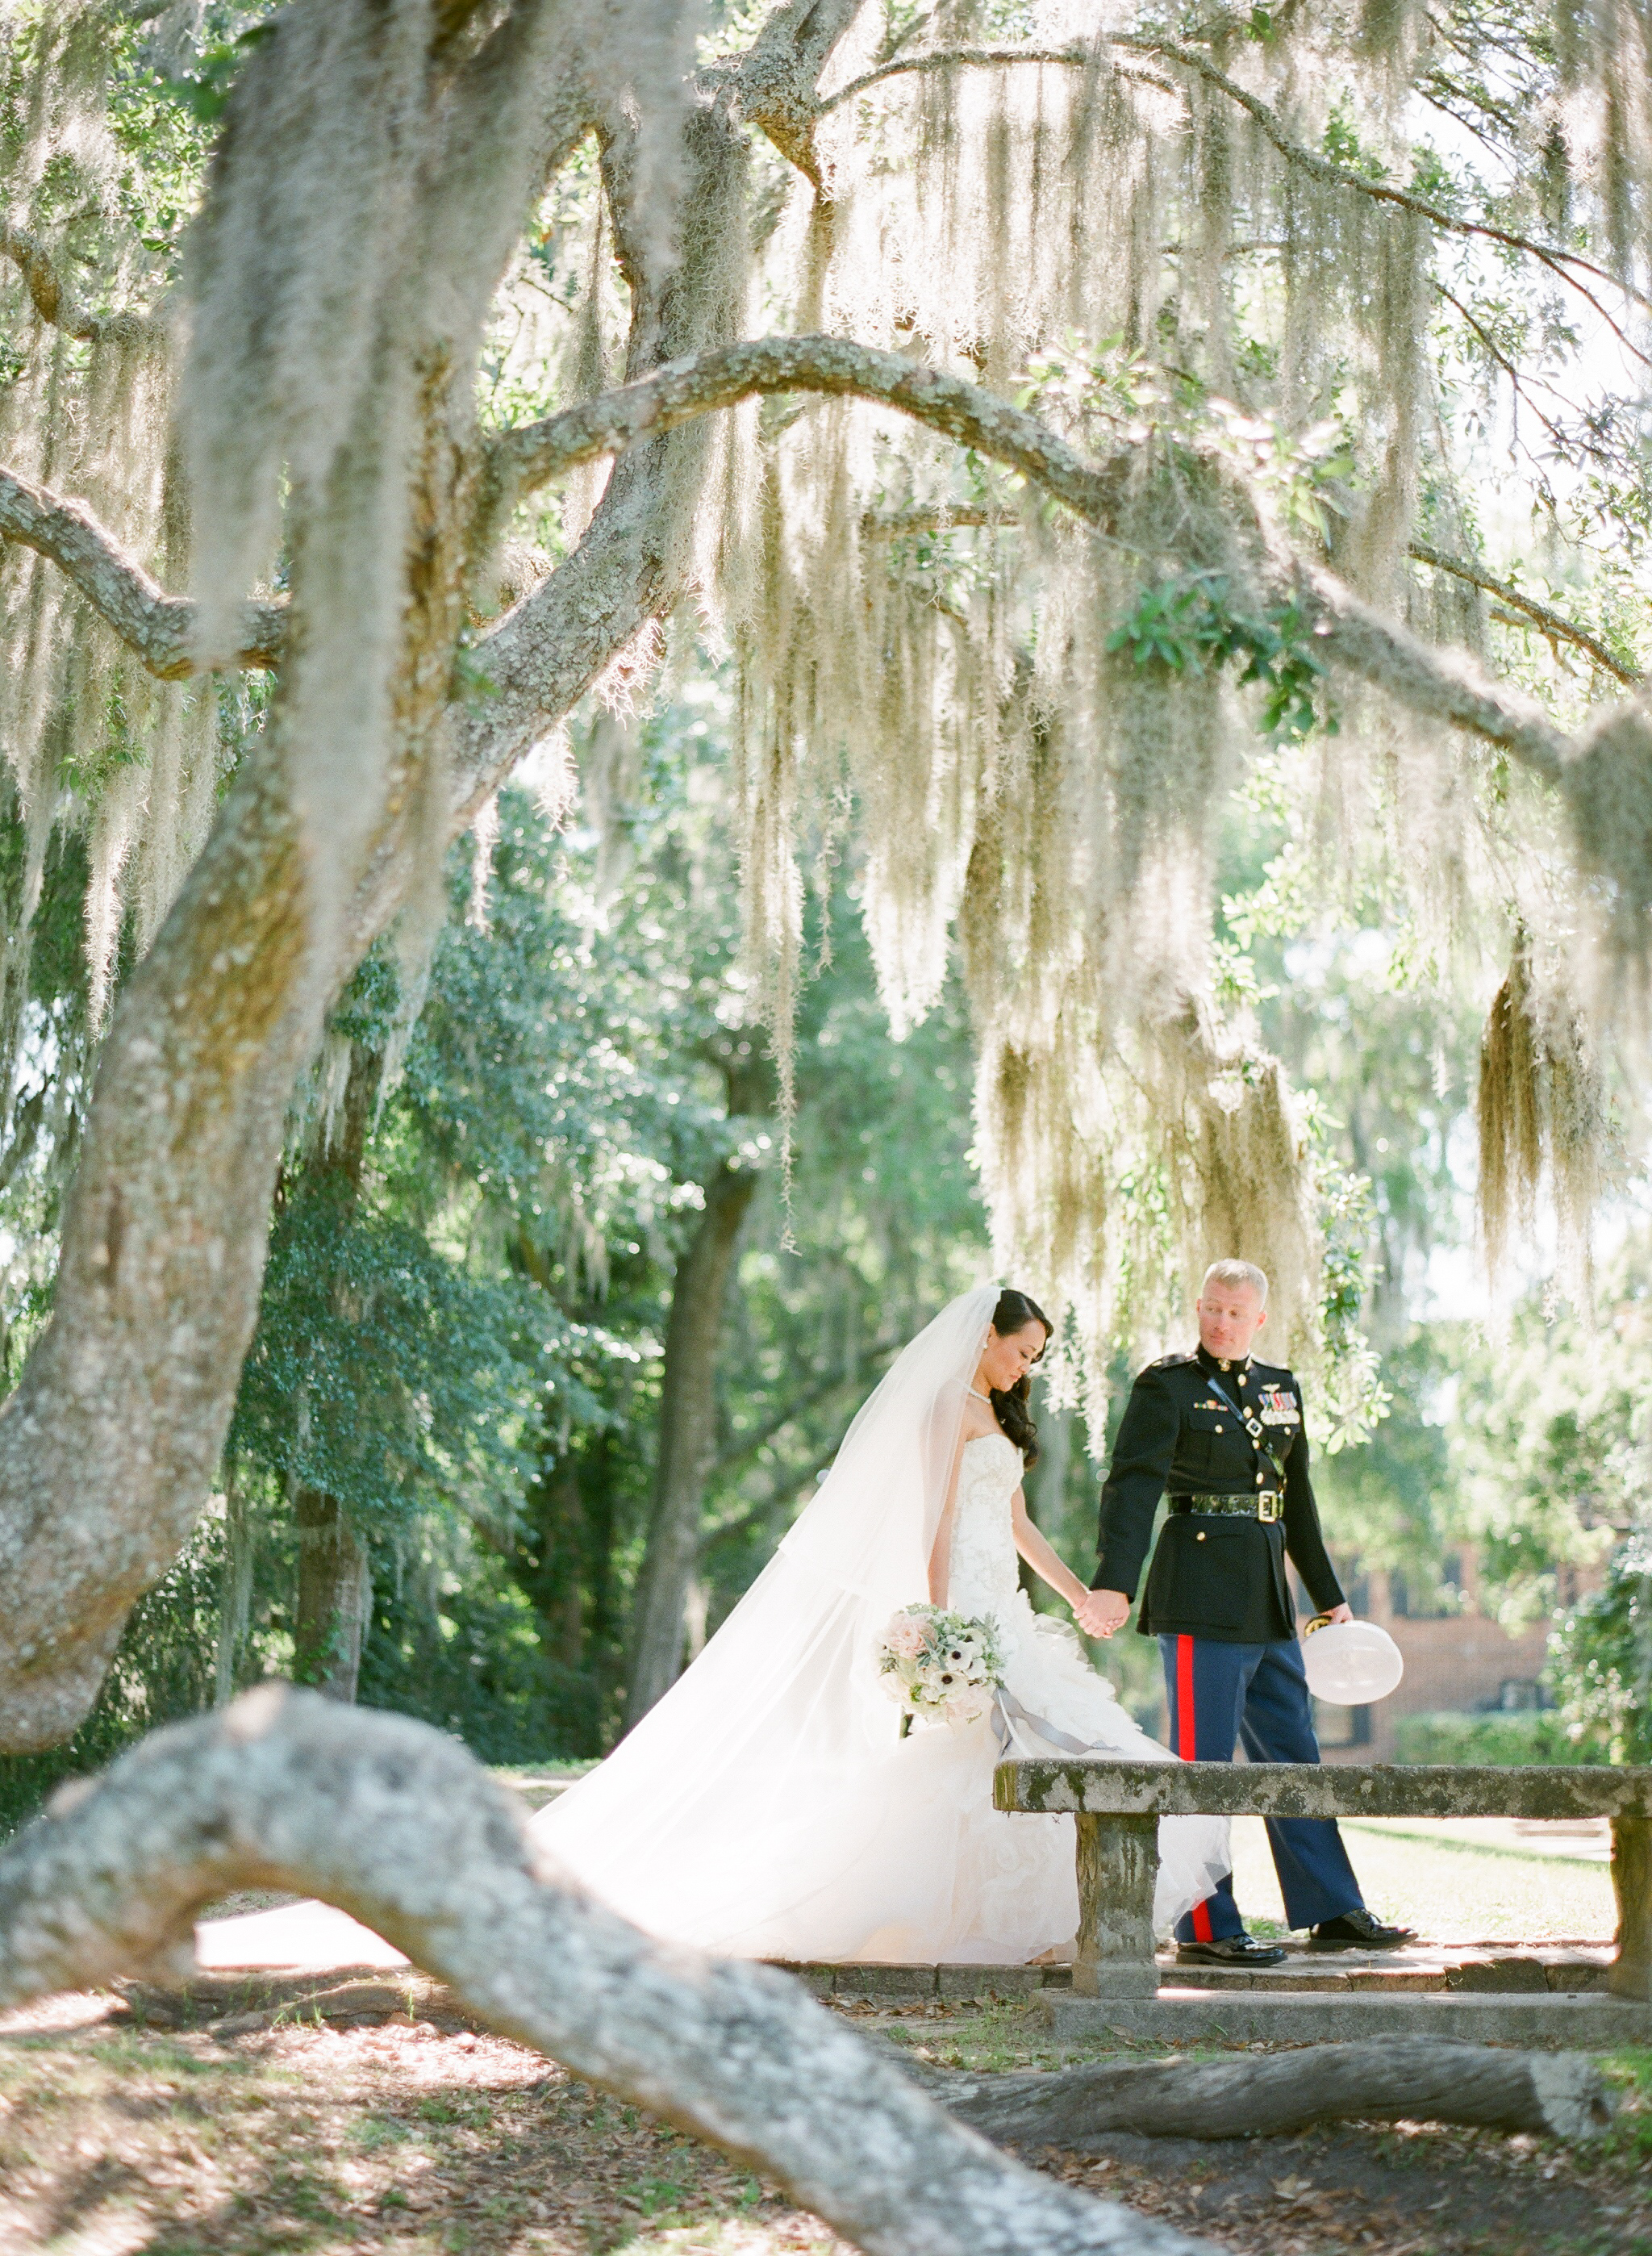 Kat & Chip's Destination Wedding at Middleton Place (Charleston, SC)